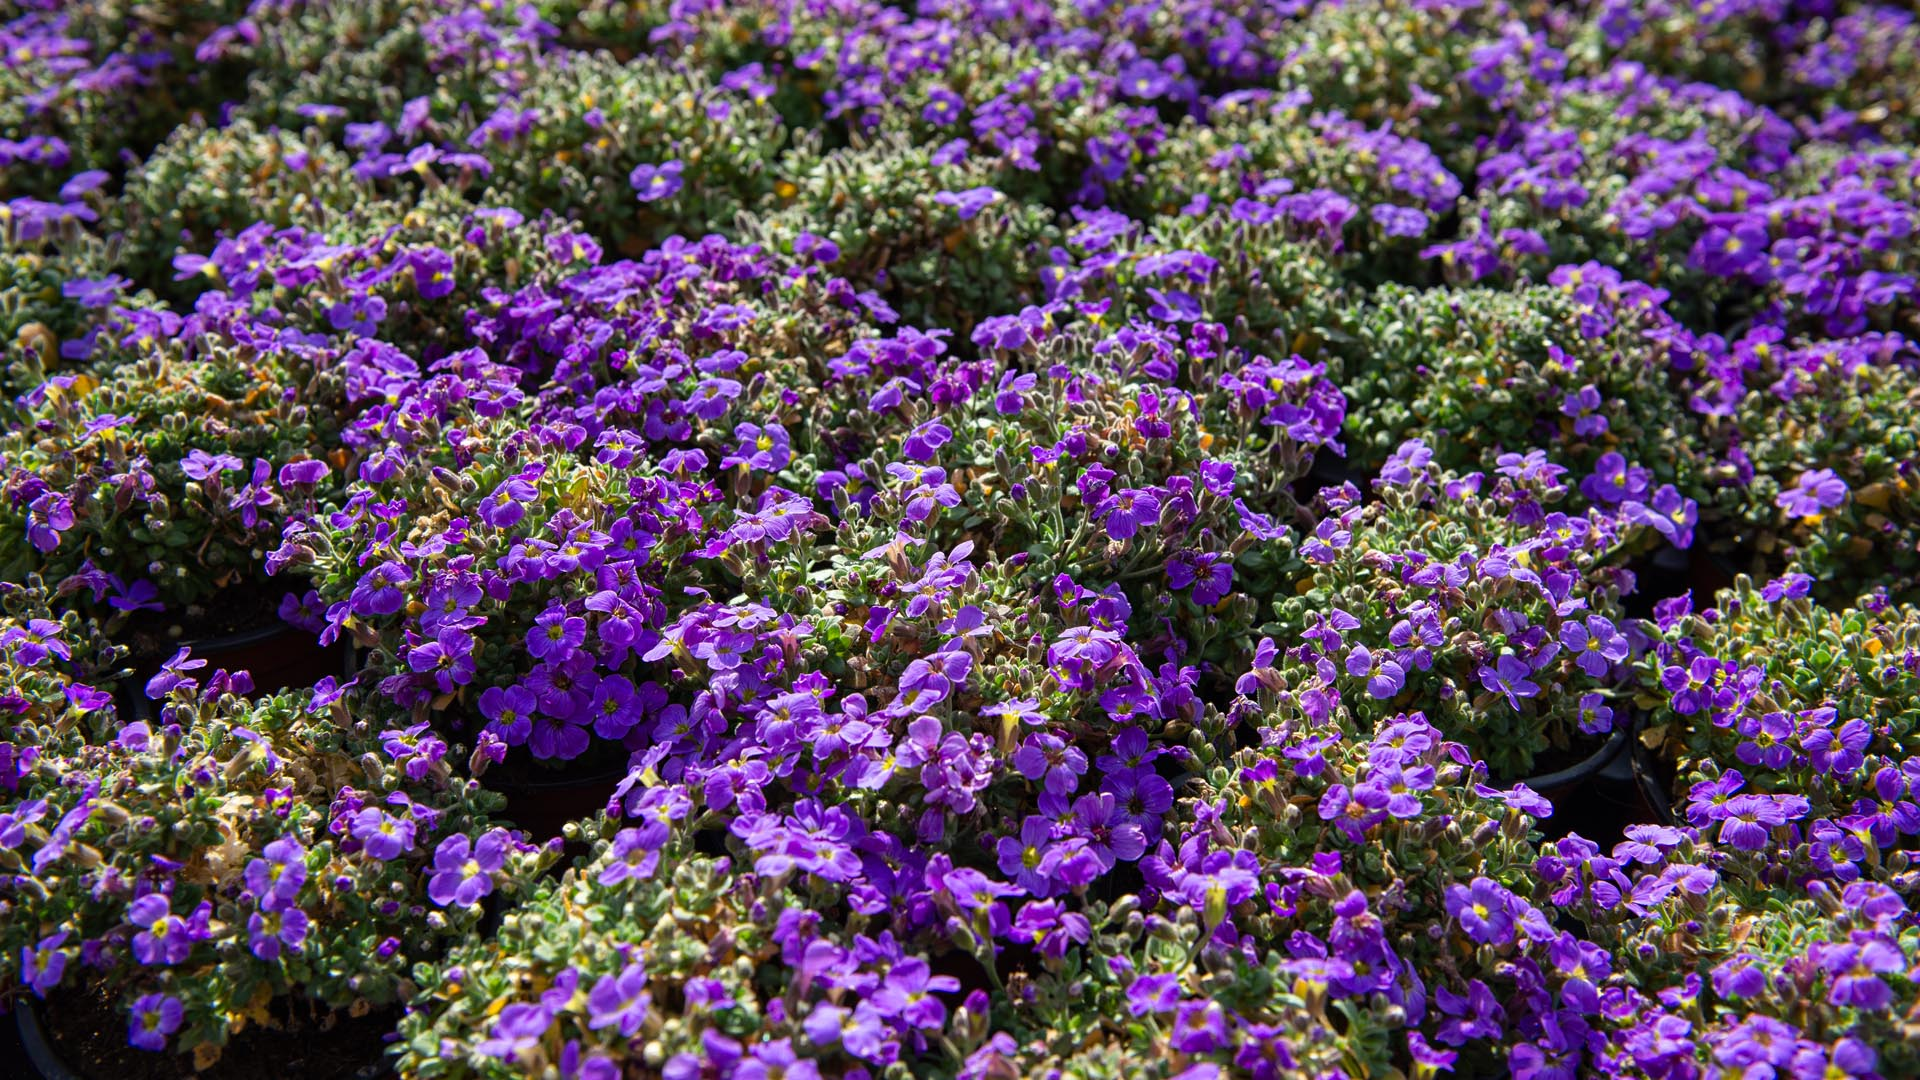 017_039_AUBRIETA 'Audrey Light Blue'_0873_vag.jpg